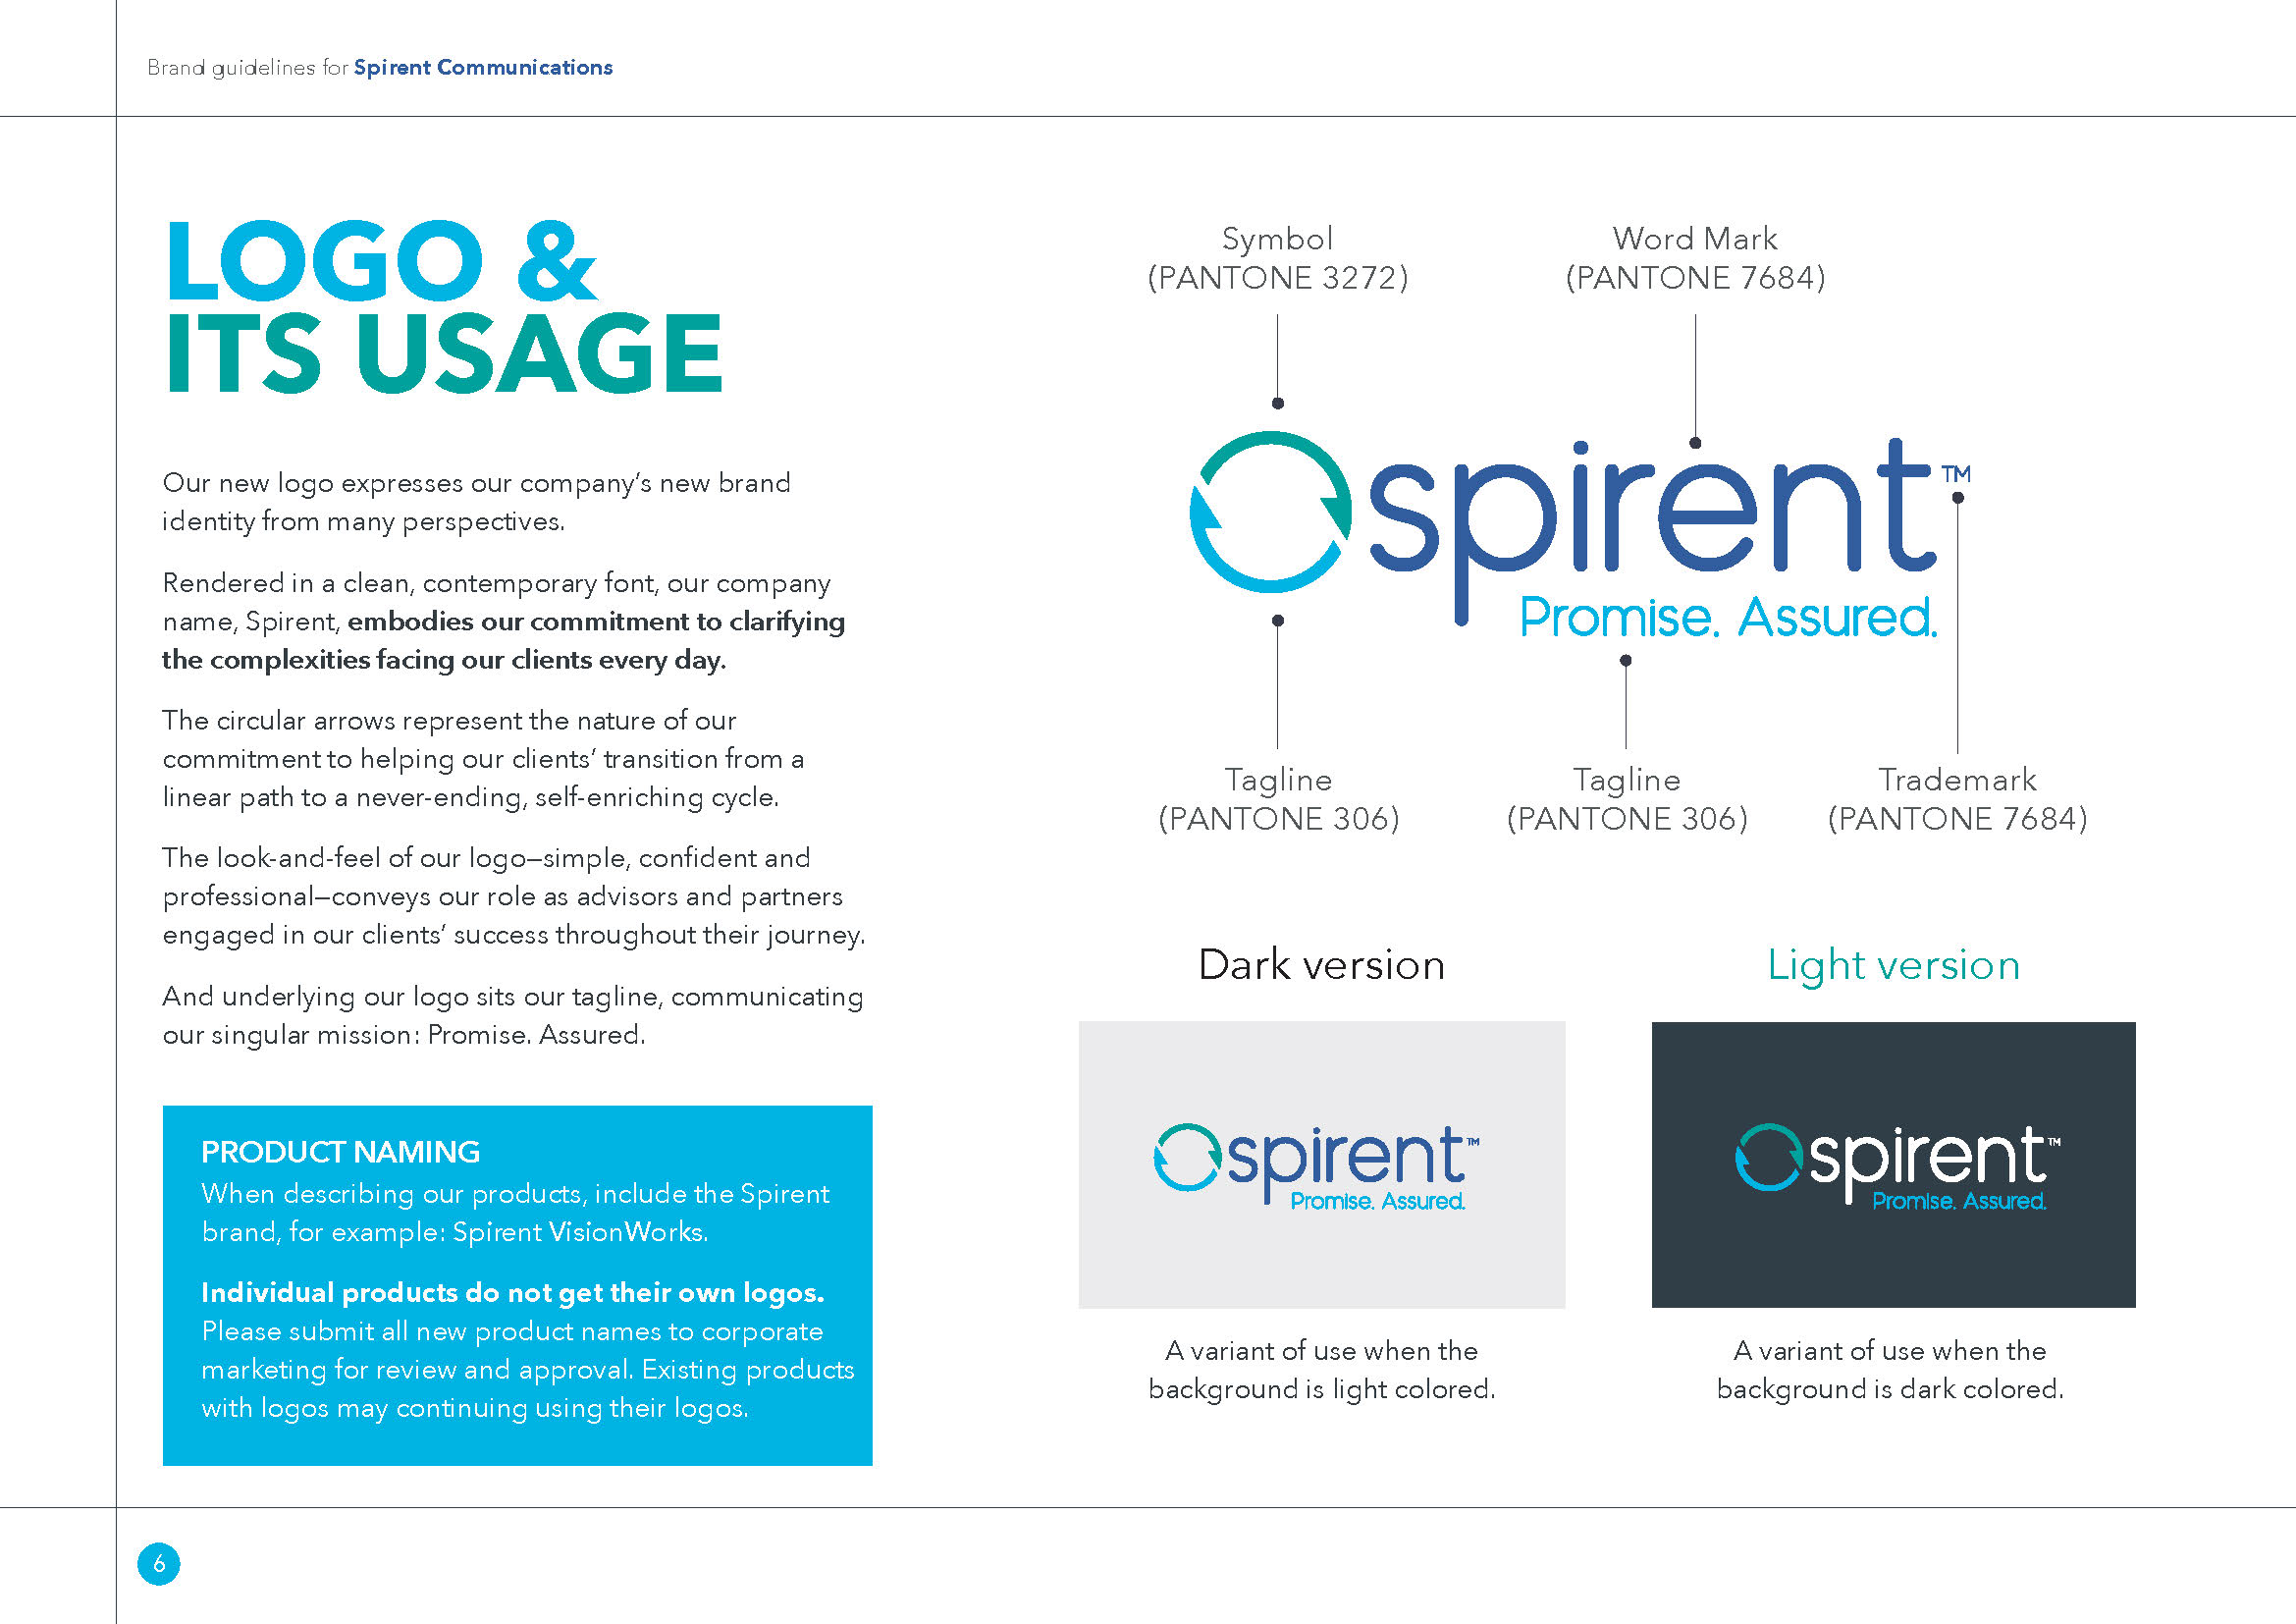 Spirent-Brand-Guidelines-7-18-18_Page_06.jpg